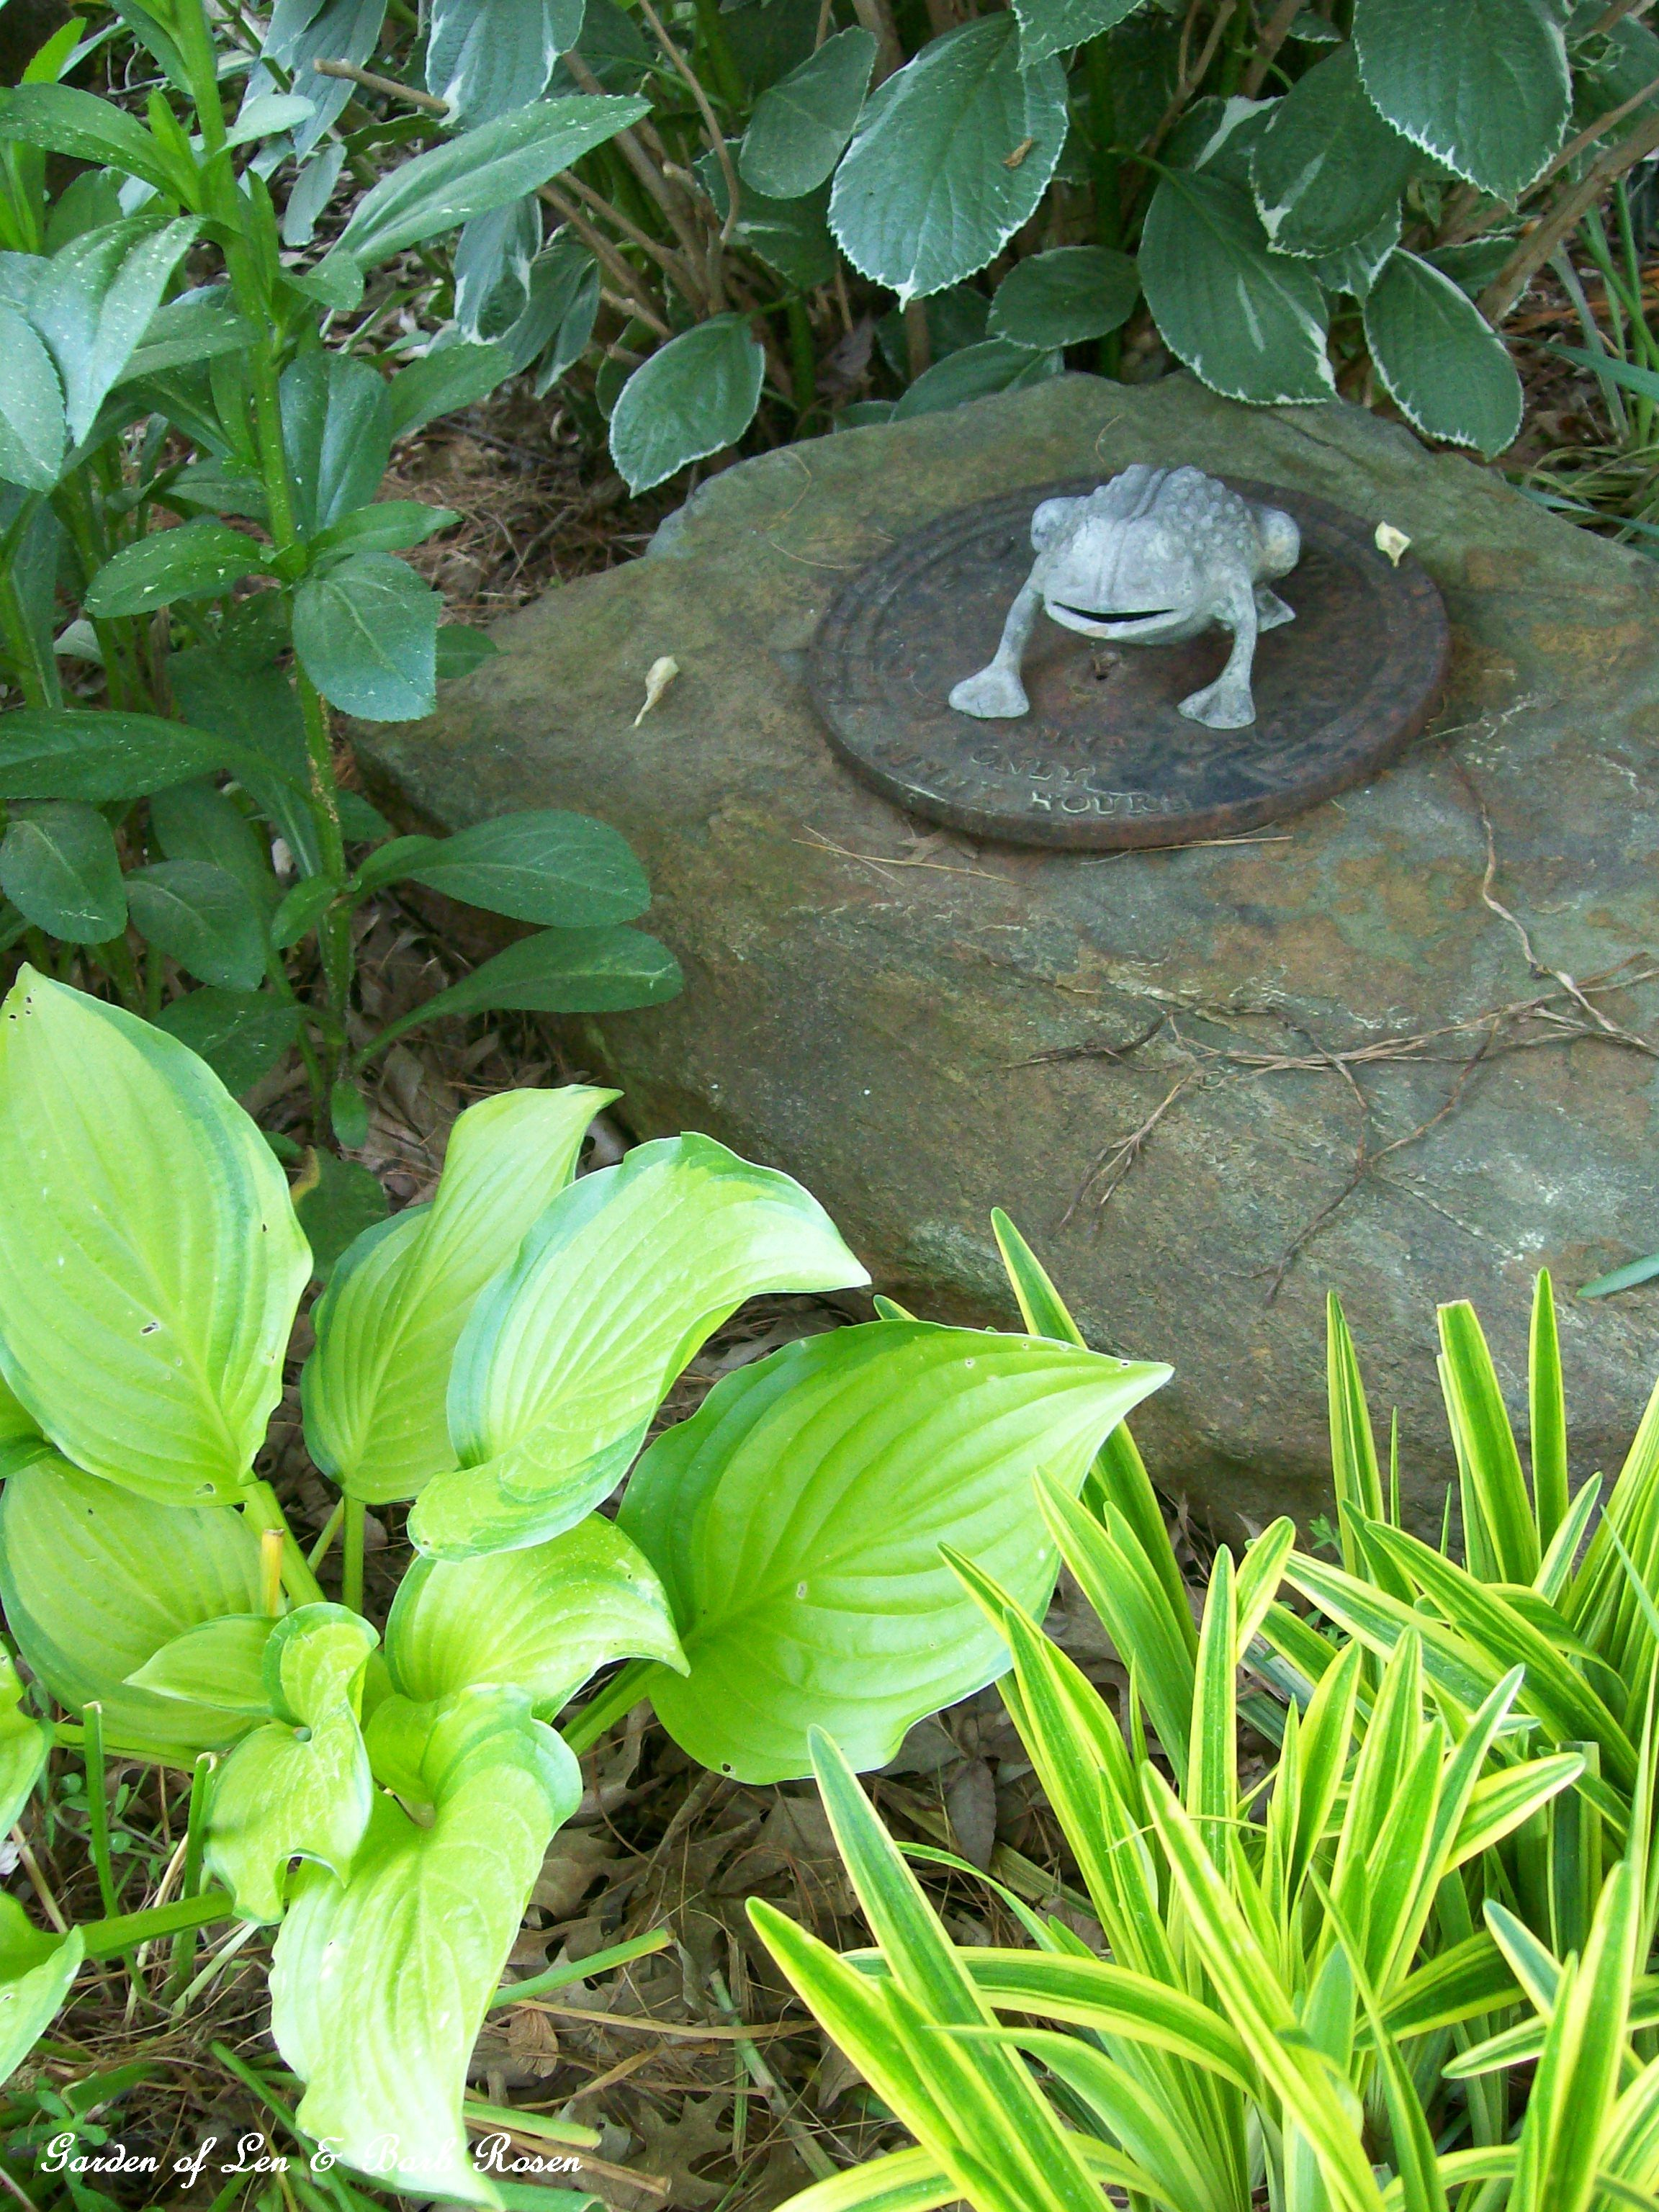 Cast iron frog on a stone in the shade garden (May 20, 2012)